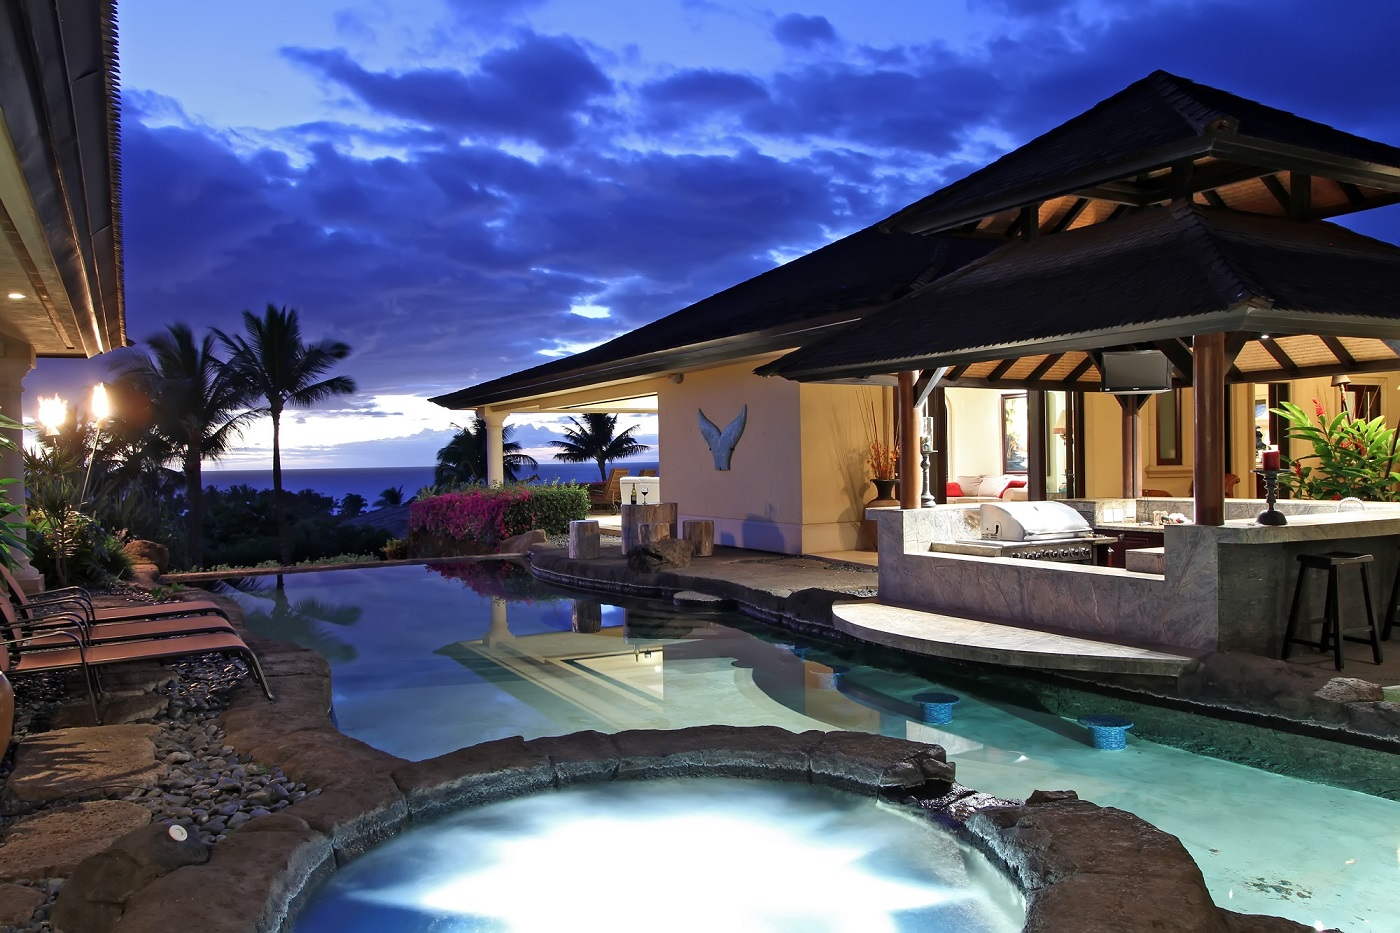 Maui Real Estate Blog News Trends Market Data Sales New - Luxury homes in maui